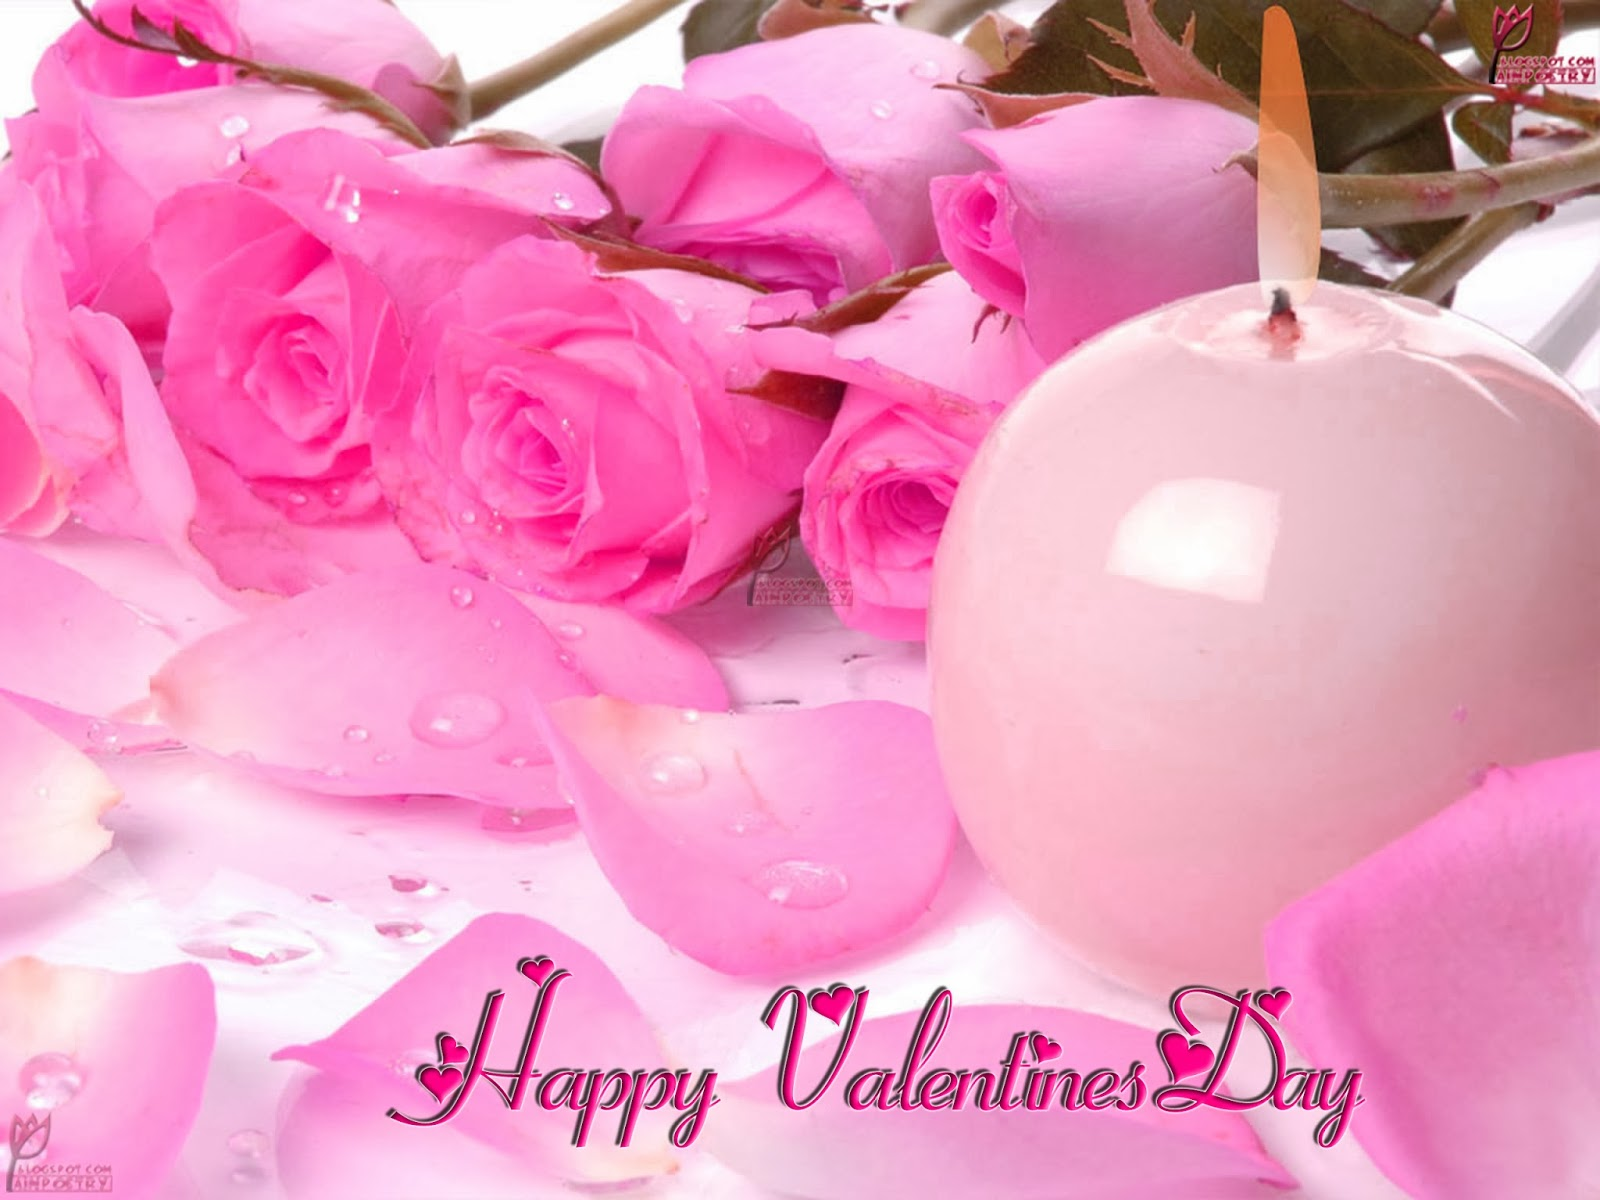 Happy Valentines Day Wallpaper Photo Image HD